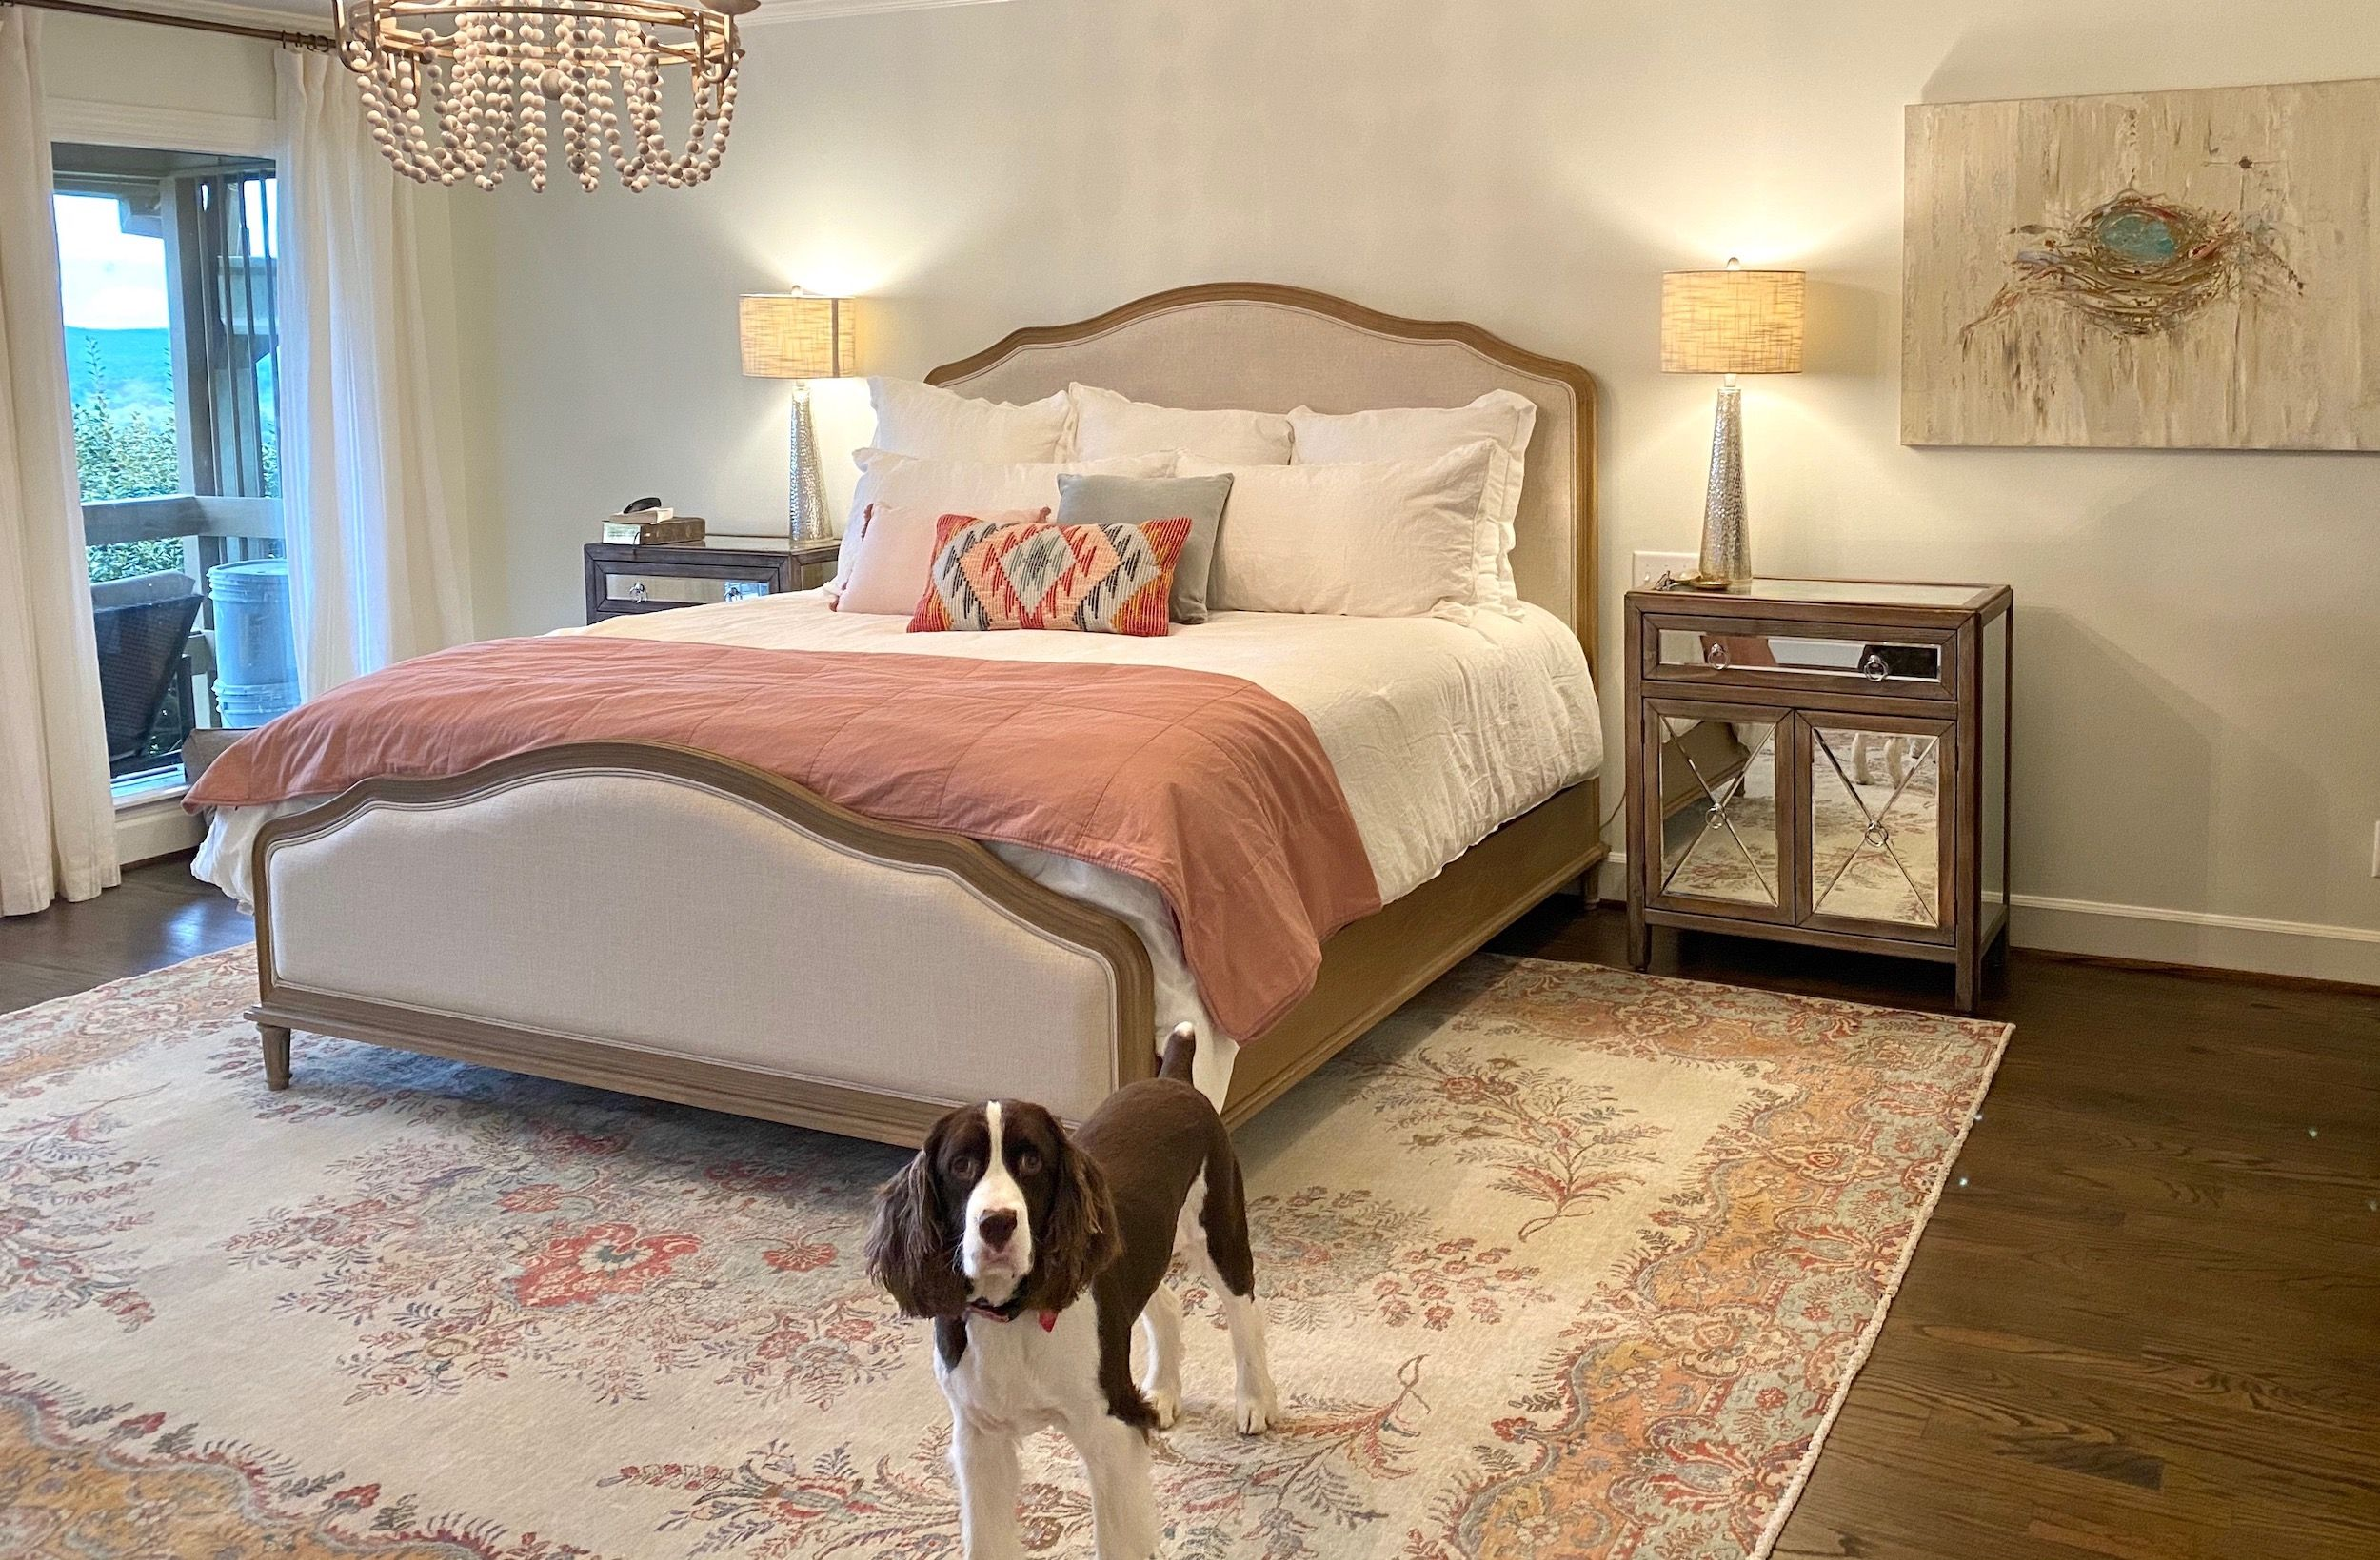 Our unique Old Persian Tabriz Oriental Rug offers a balance of light and color to this Master Bedroom Retreat! 🤗  #masterbedroomrug #budgetwasmet #happycustomer  #nilipourorientalrugs #familybusiness #fullservice #since1972  #orientalrug #Tabrizorientalrug #subtledesign #mutedcolors #artyoucantreadon #arearug #rug #atyourservice #shoplocal #traditionalrug #oversizerug #vintagerug #rugcleaning #rugrepairing #orientalrugcleaning #orientalrugrepairing #wholesaleprices #qualityrug #directimporting